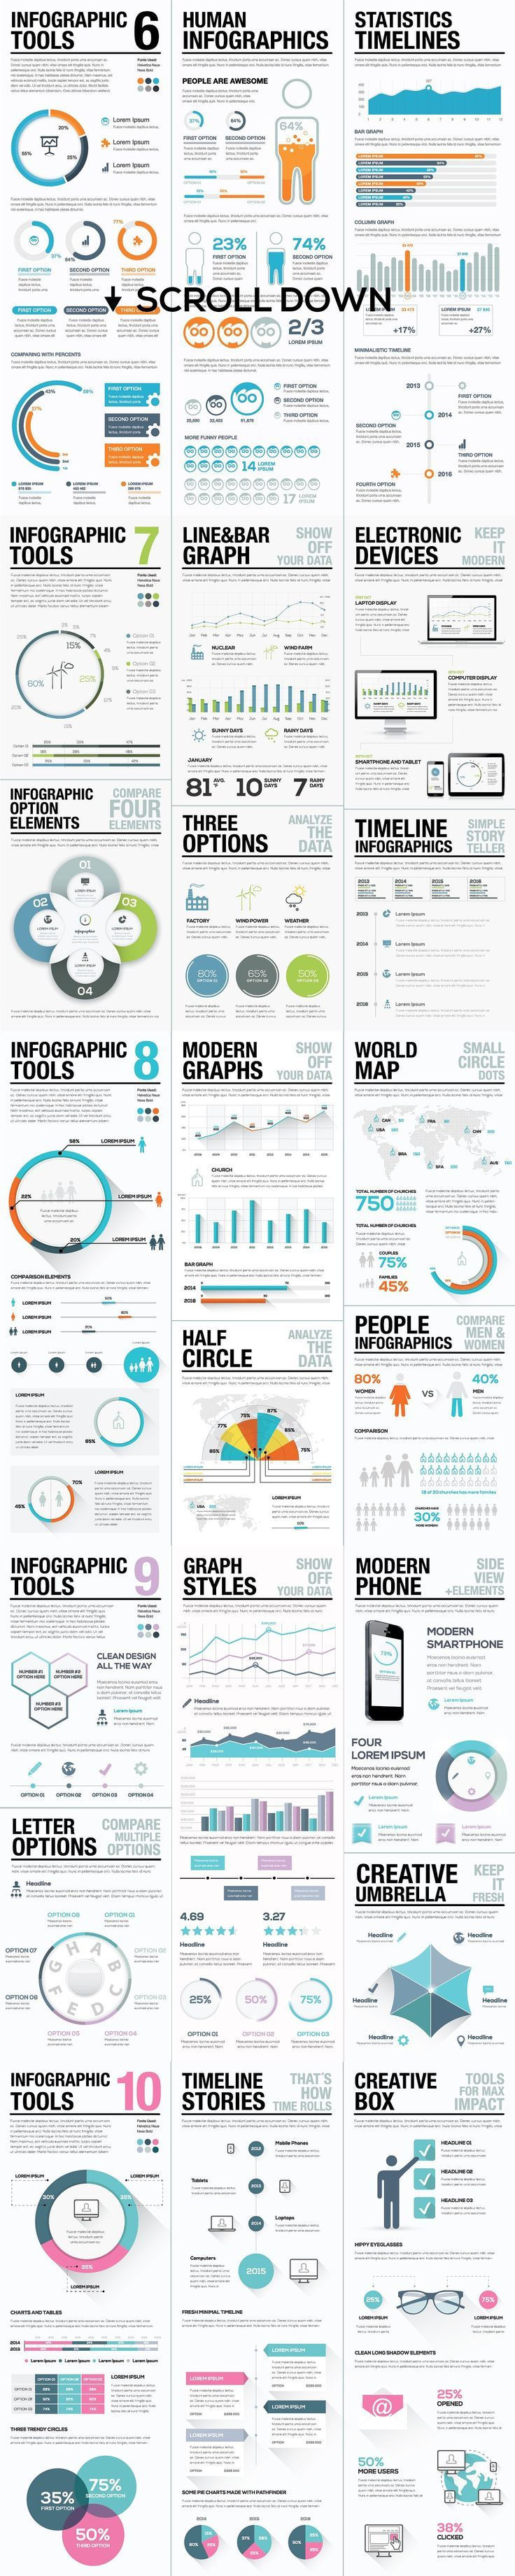 Business infographic & data visualisation   45%OFF Infographic Elements Bundle 2 by Infographic Template Shop on Creative Ma…   Infographic   Description  45%OFF Infographic Elements Bundle 2 by Infographic Template Shop on Creative Market    – Infographic Source –   - #Business